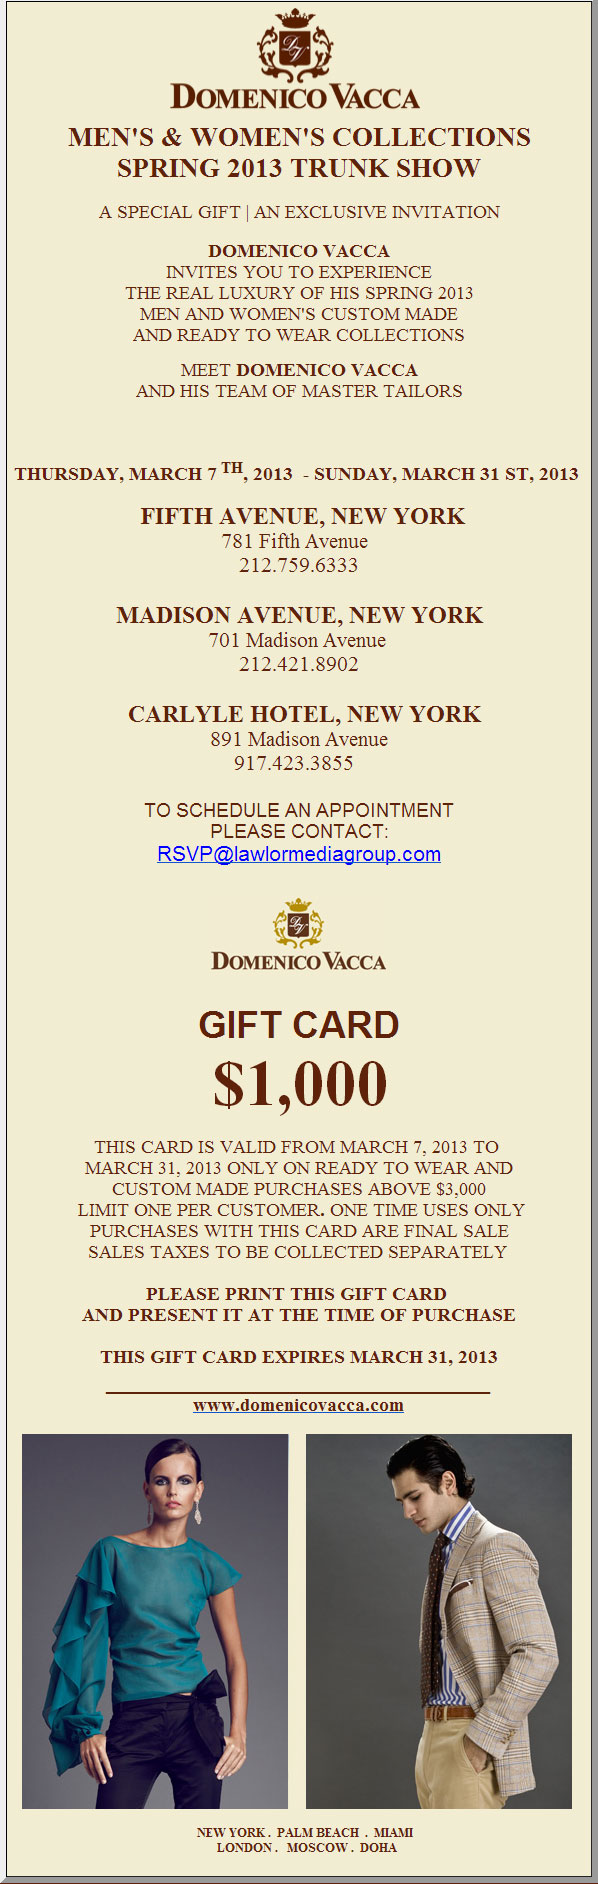 Domenico Vacca Men's & Women's Collections Spring 2013 Trunk Show